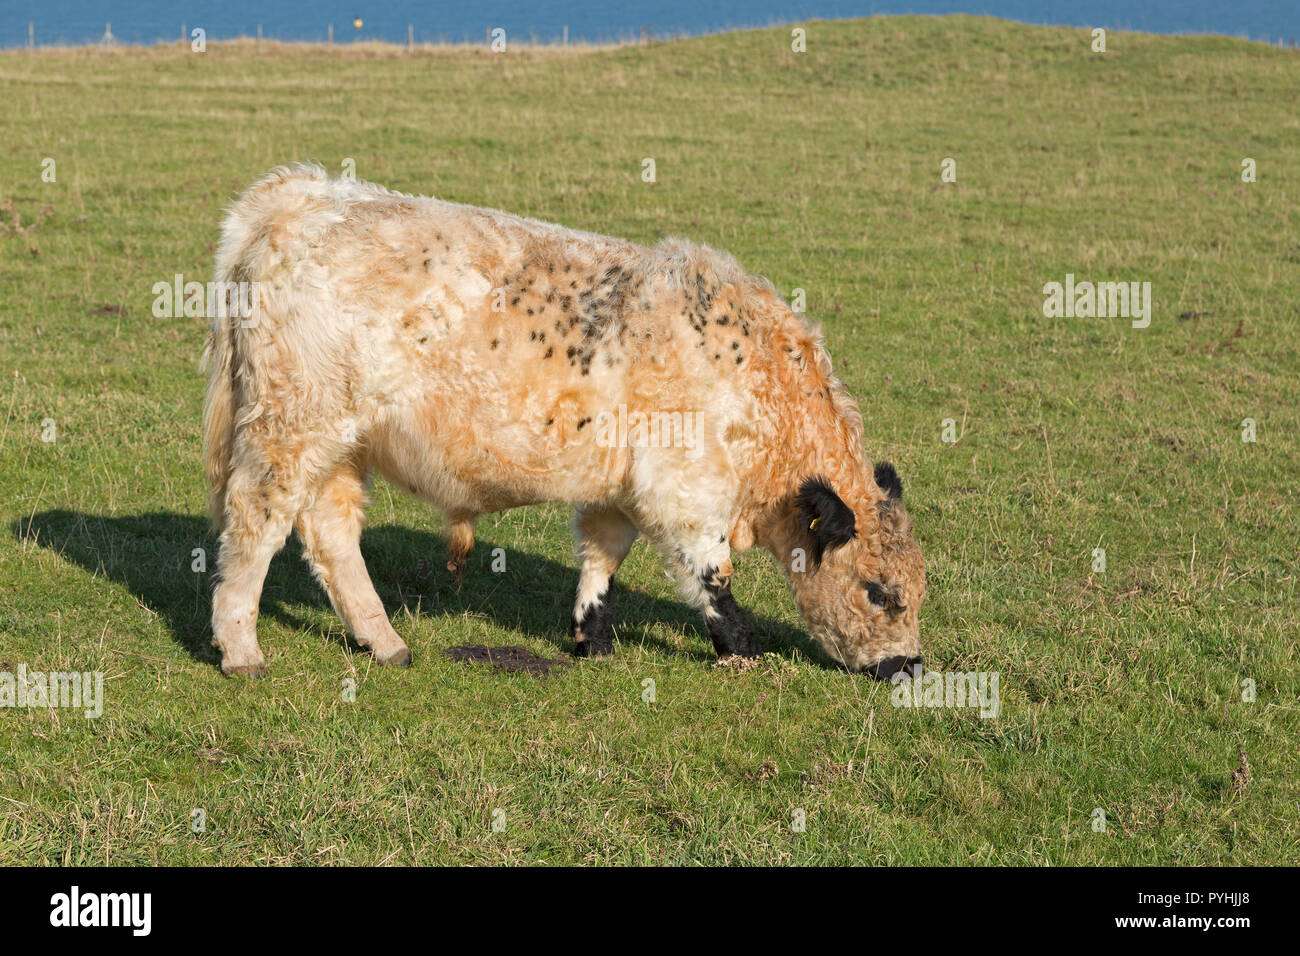 cattle grazing on Oberland (upper land), Heligoland, Schleswig-Holstein, Germany Stock Photo